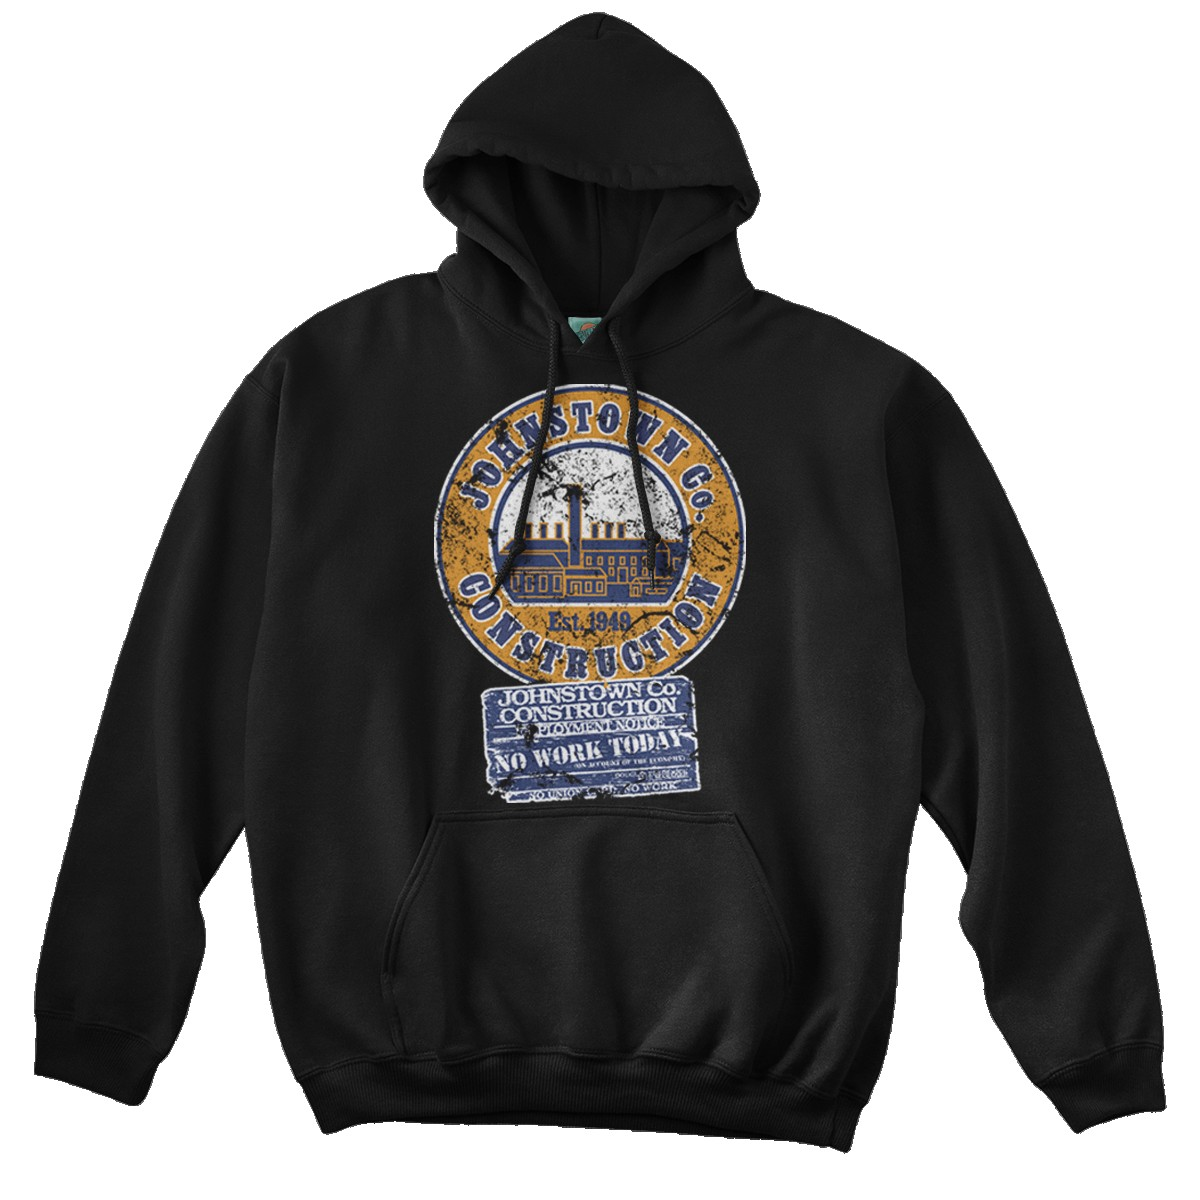 Bruce-Springsteen-JOHNSTOWN-COMPANY-CONSTRUCTION-The-River-inspired-Hoodie